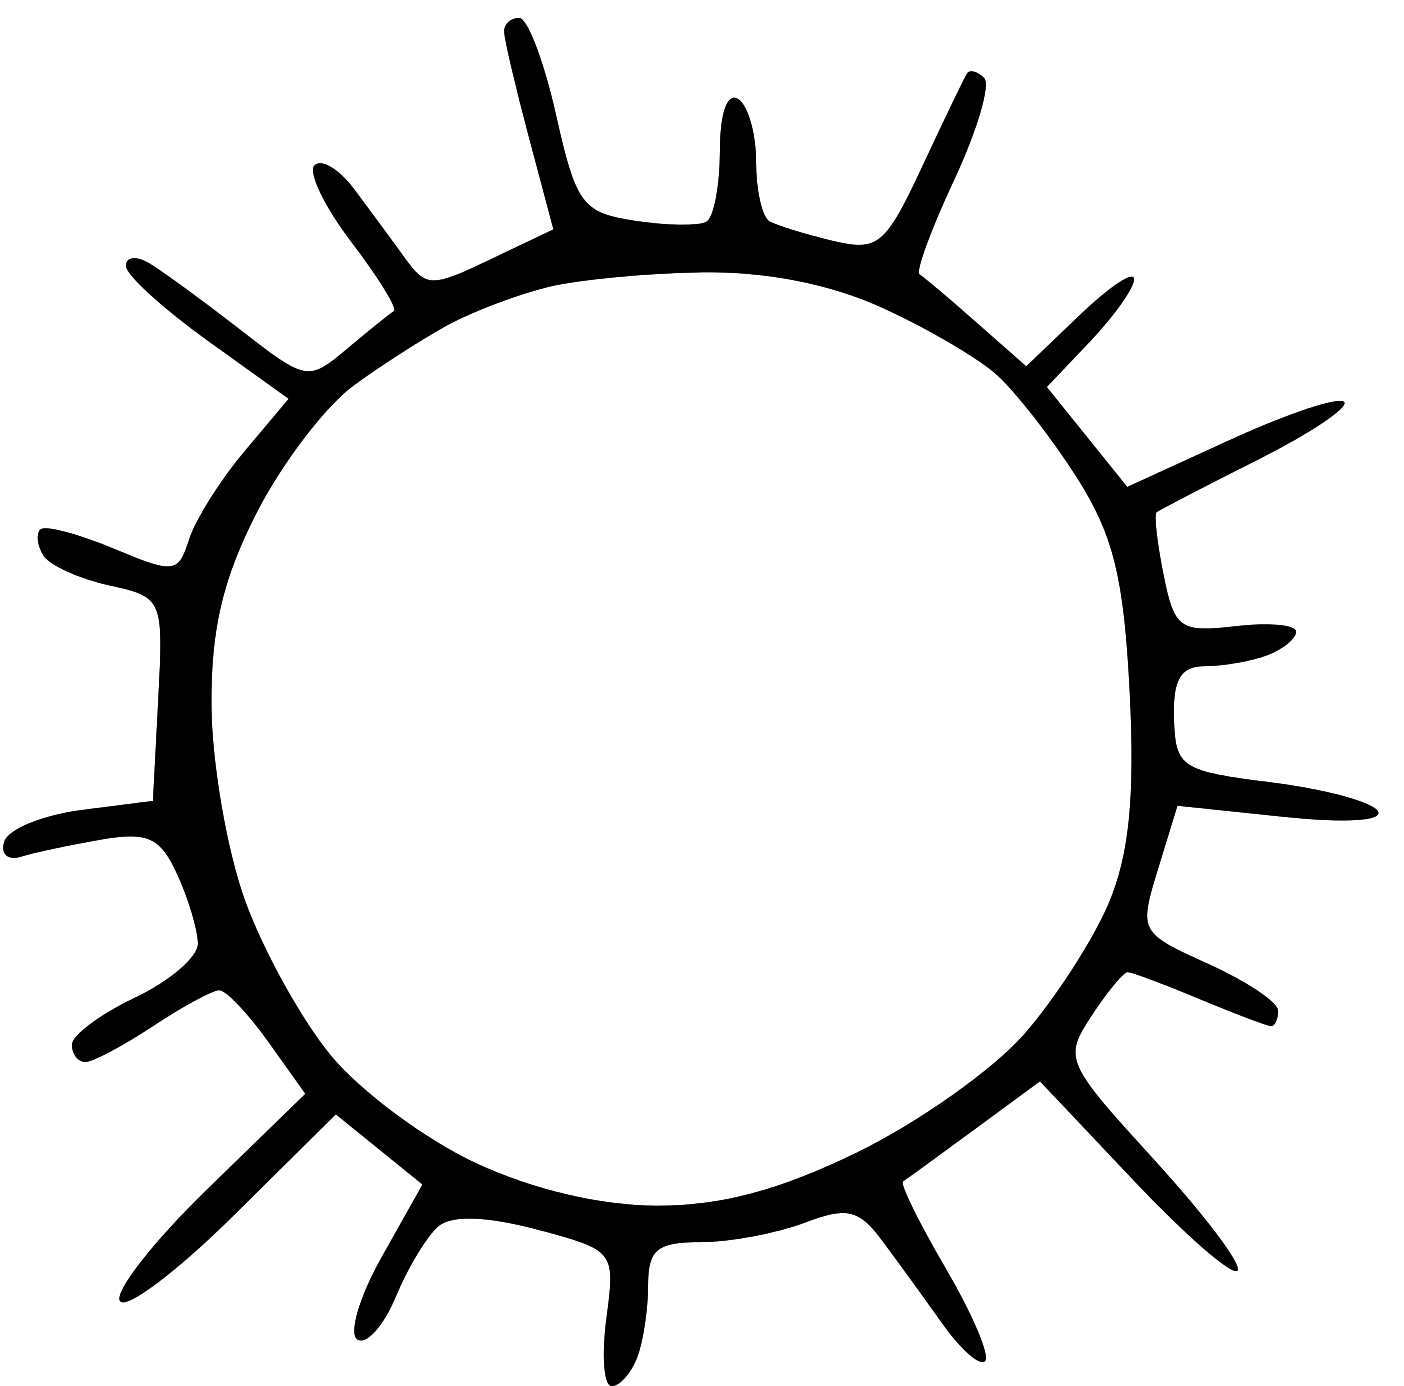 1404x1386 Black And White Sun Clip Art